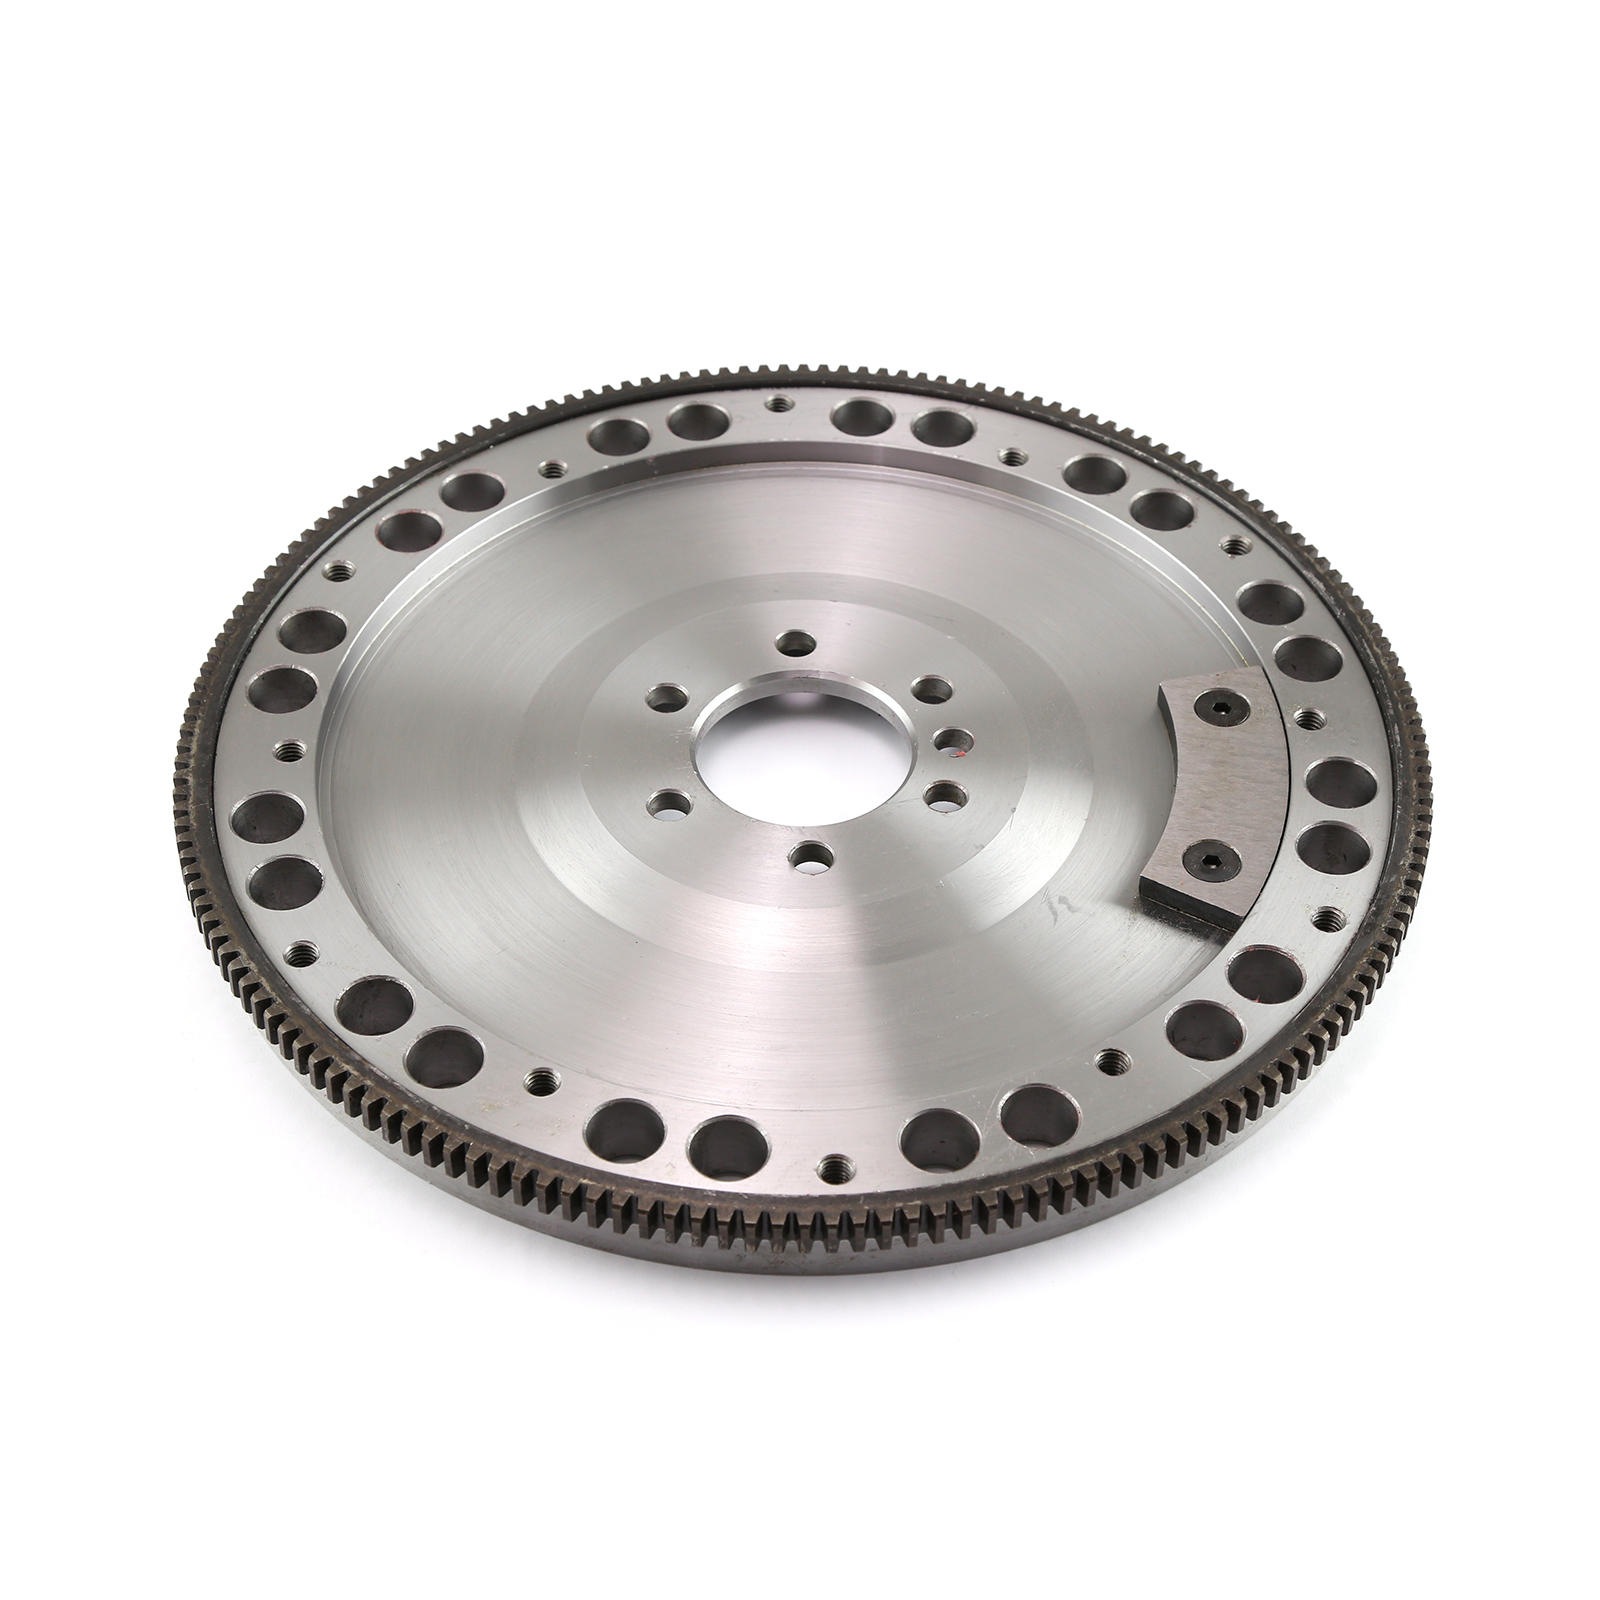 "Chevy SBC 350 2Pc Rms 168 Tooth 11"" Billet Steel SFI Flywheel Int/Ext"